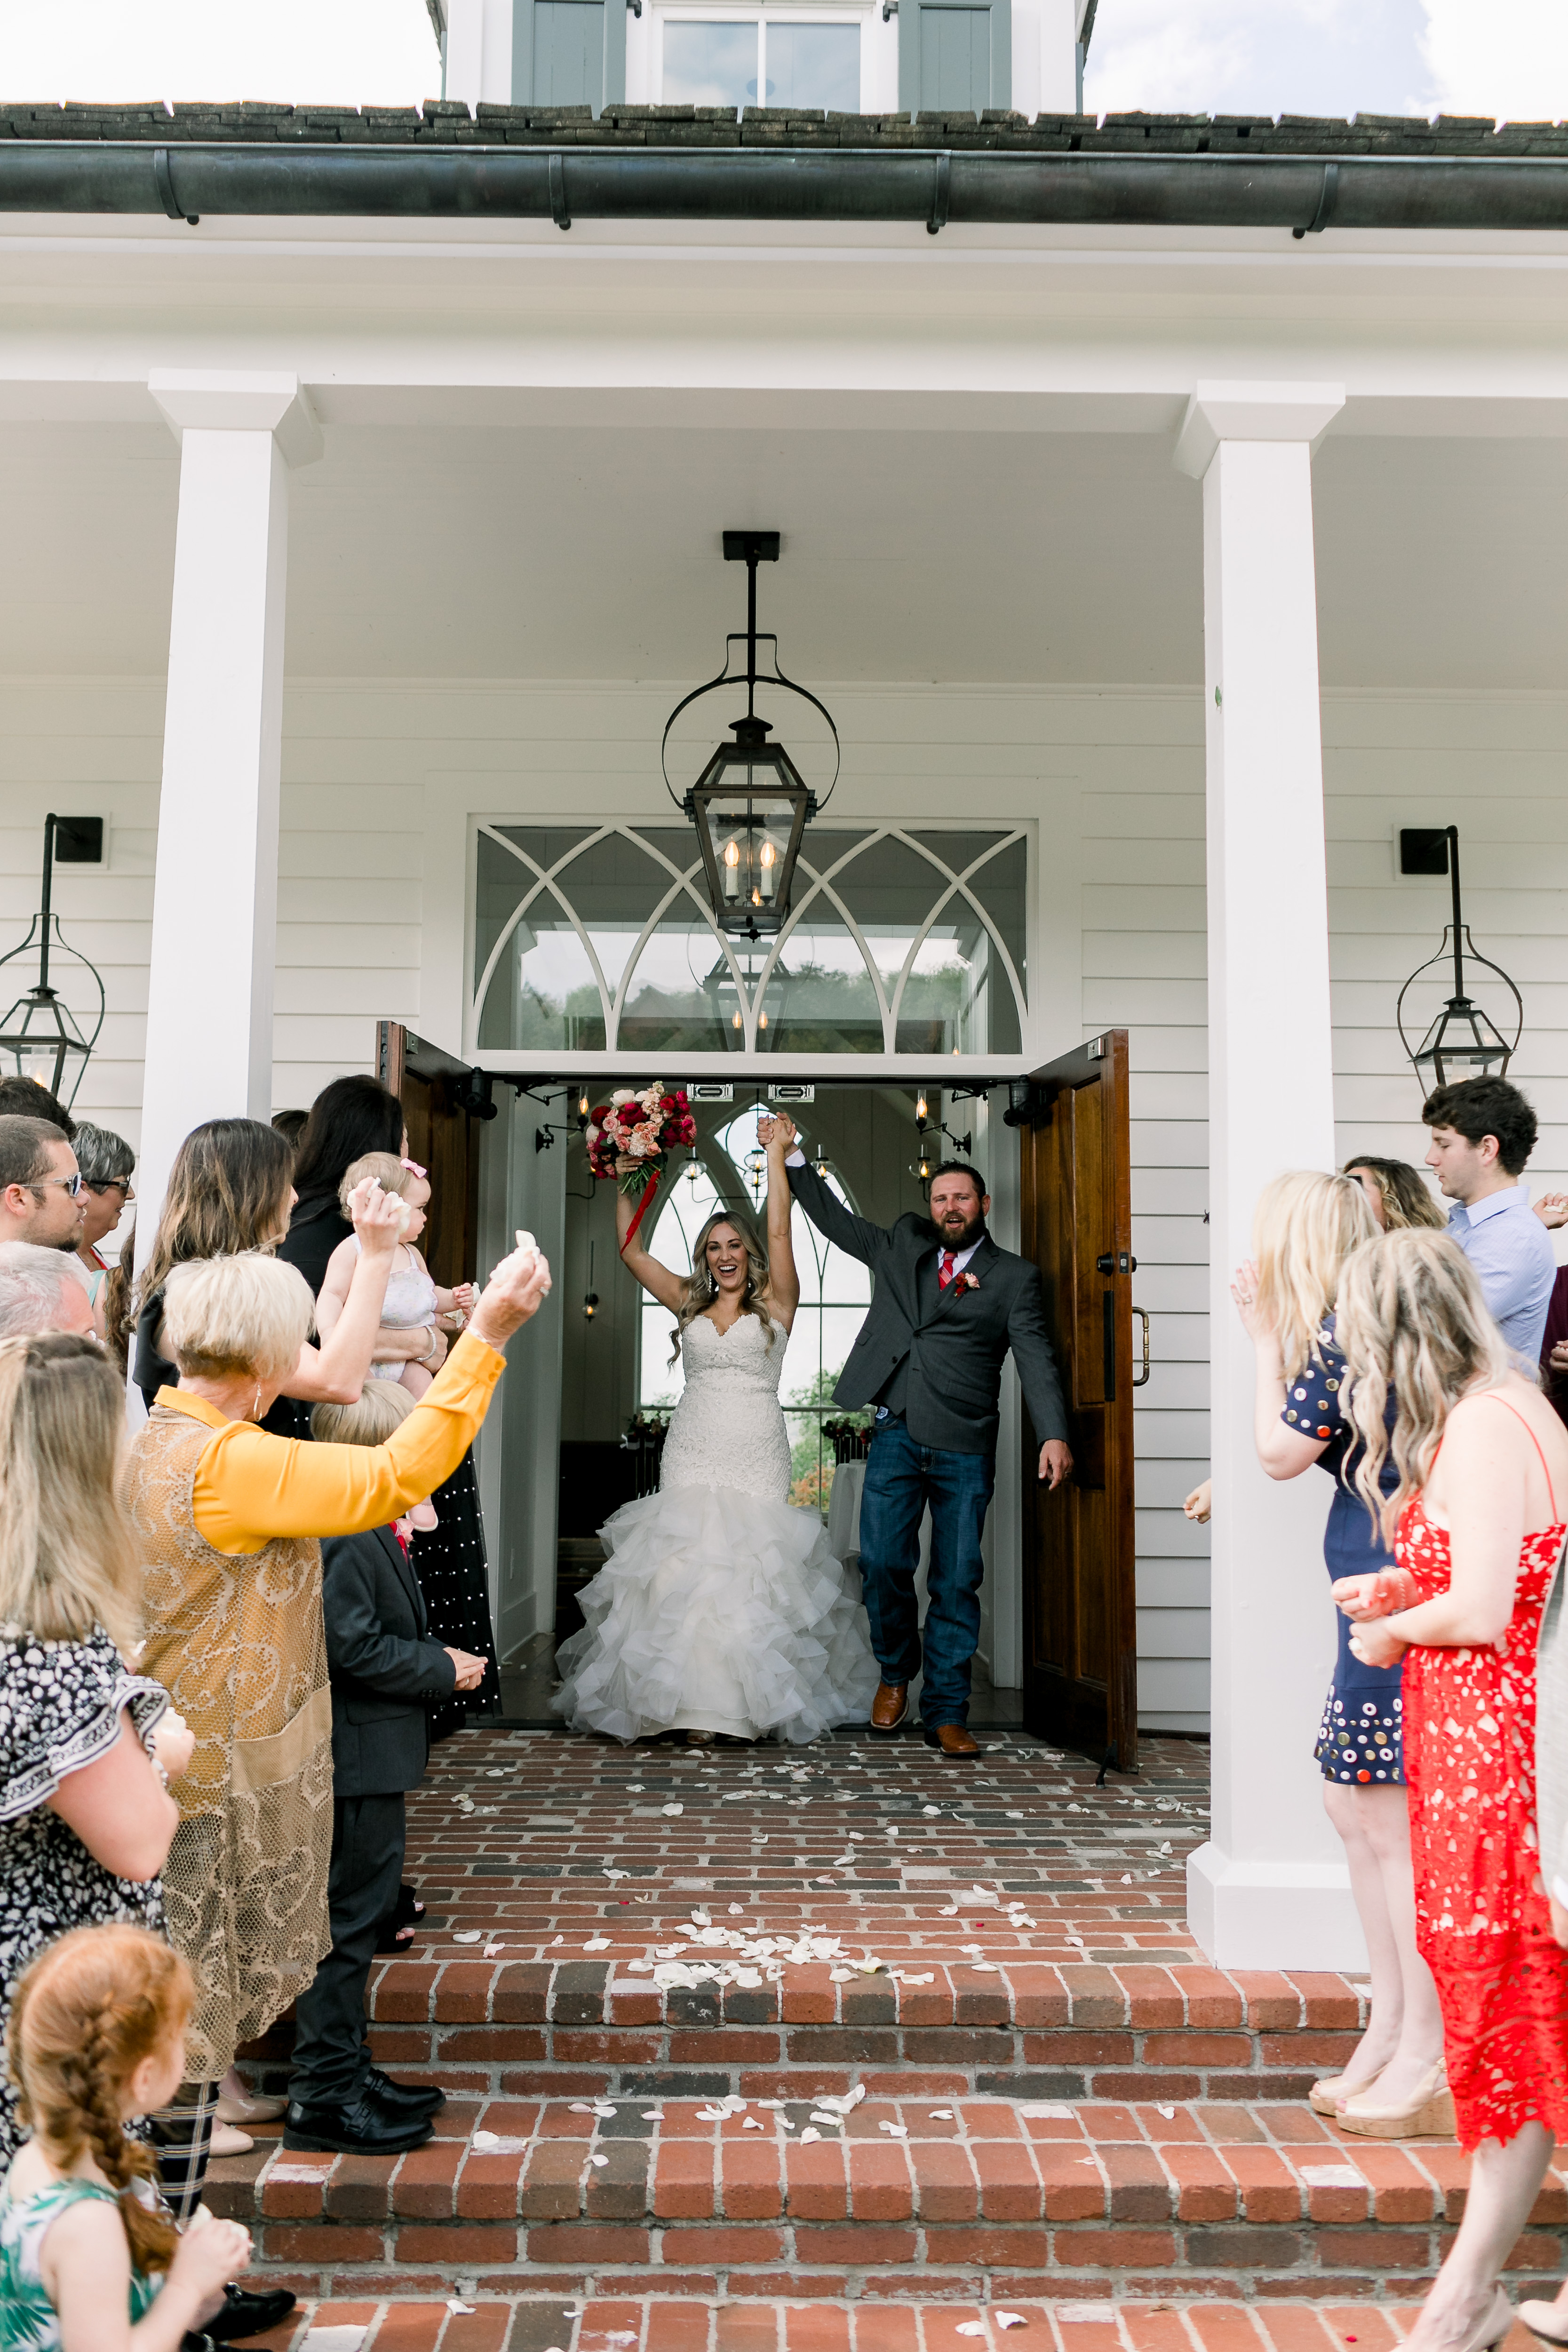 Rustic Fall Wedding in the Ozark Mountains in Branson, Missouri featured by top US lifestyle blog, Walking in Memphis in High Heels.